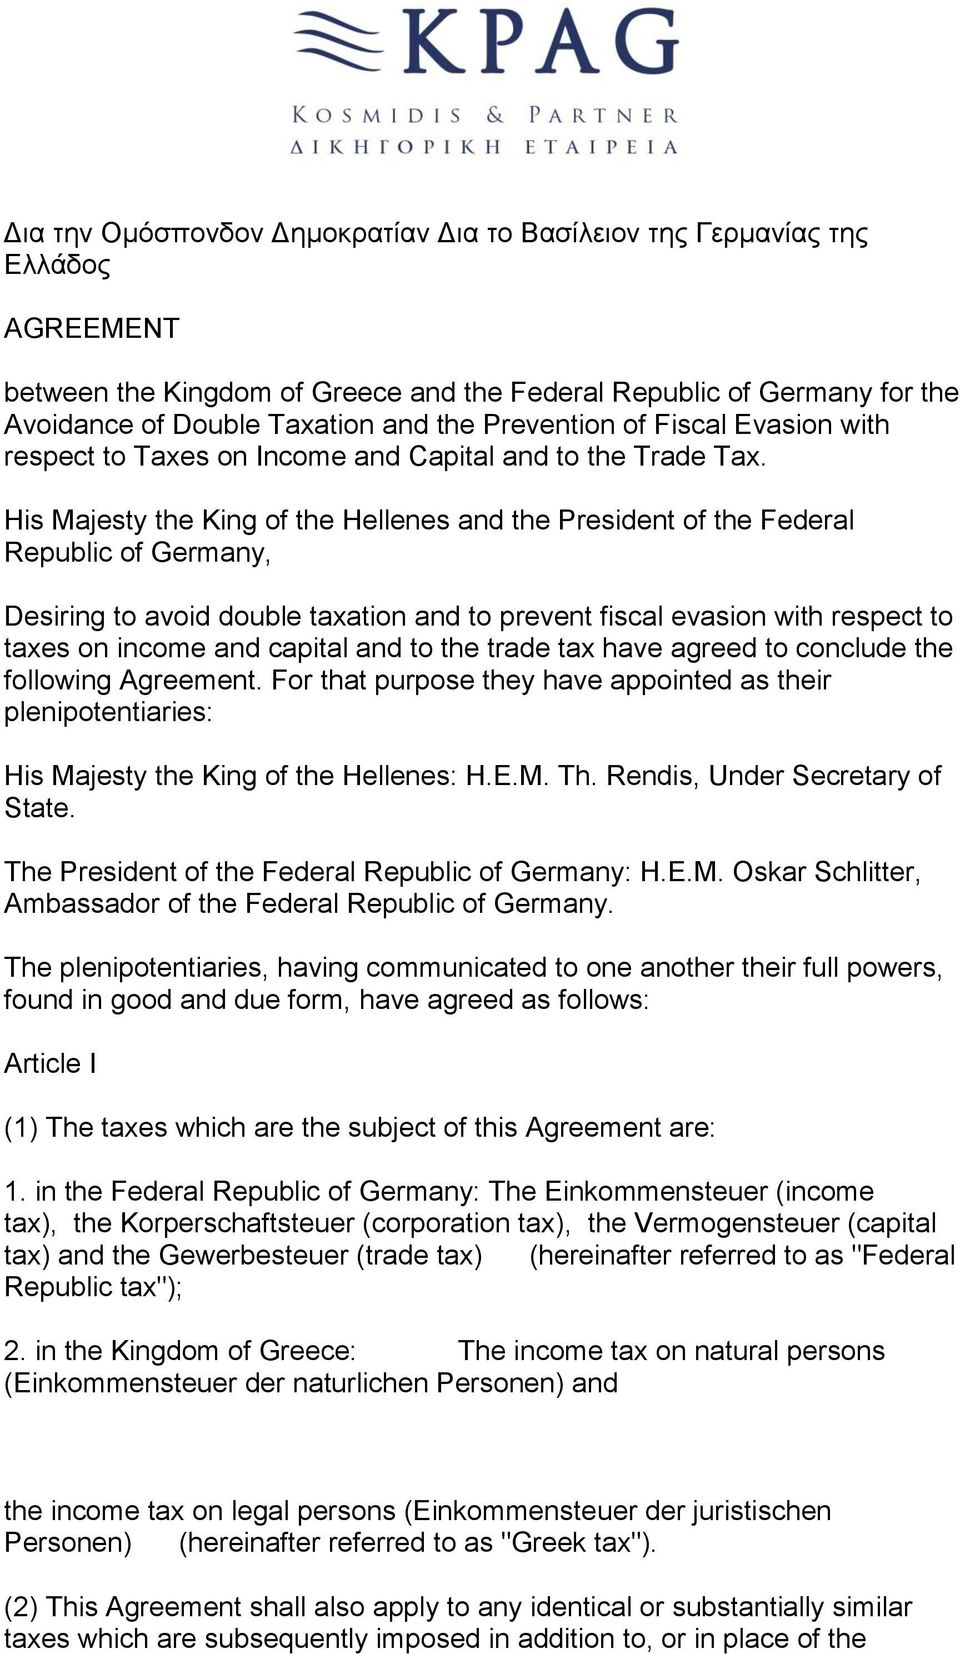 His Majesty the King of the Hellenes and the President of the Federal Republic of Germany, Desiring to avoid double taxation and to prevent fiscal evasion with respect to taxes on income and capital